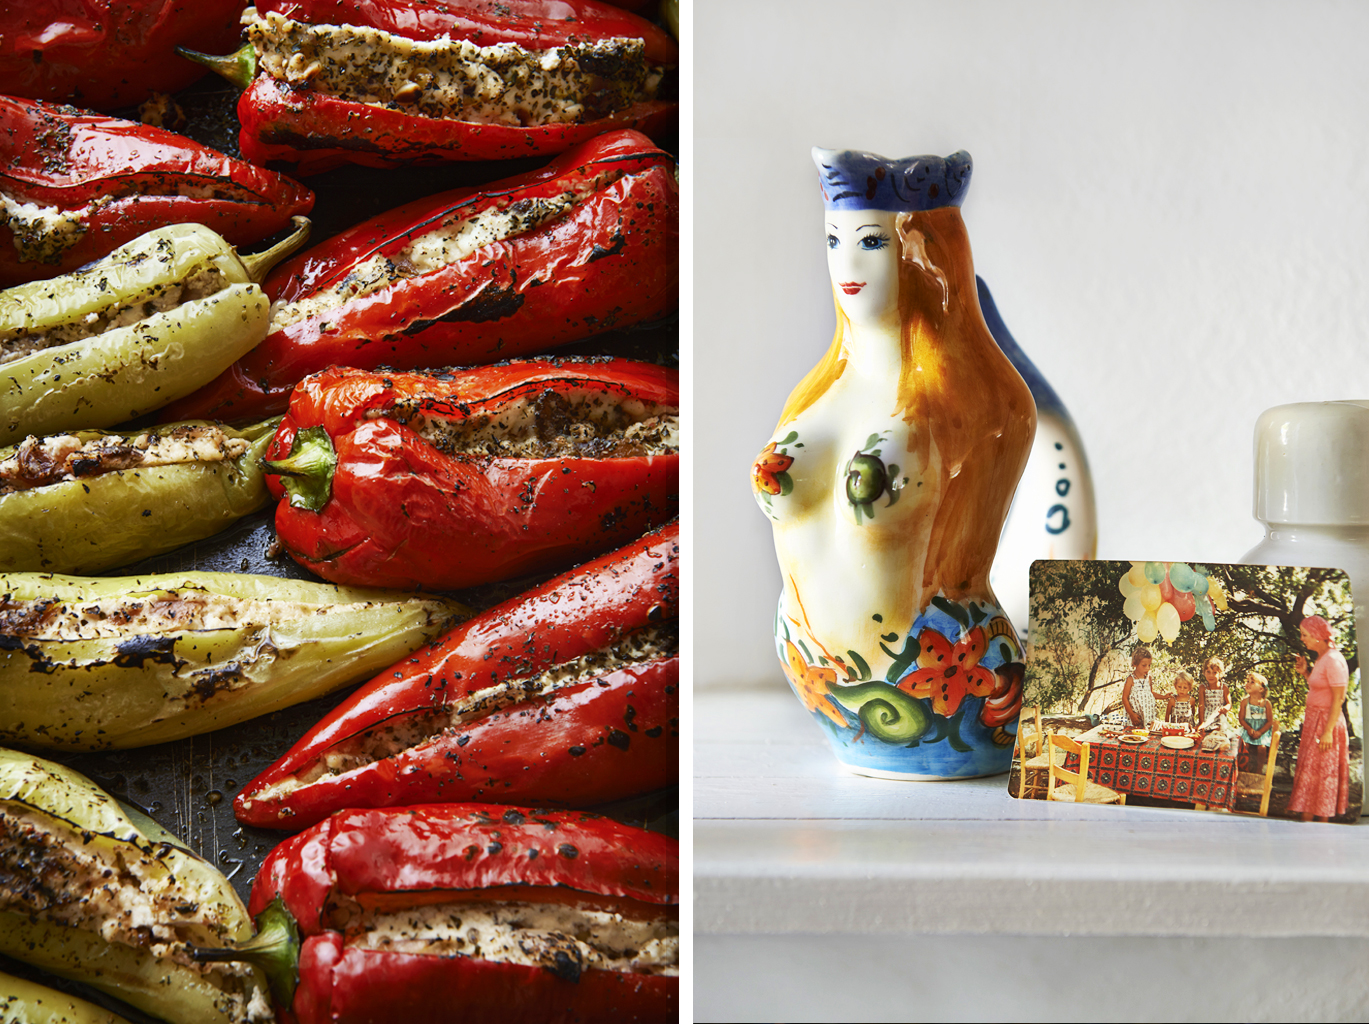 Roasted peppers.